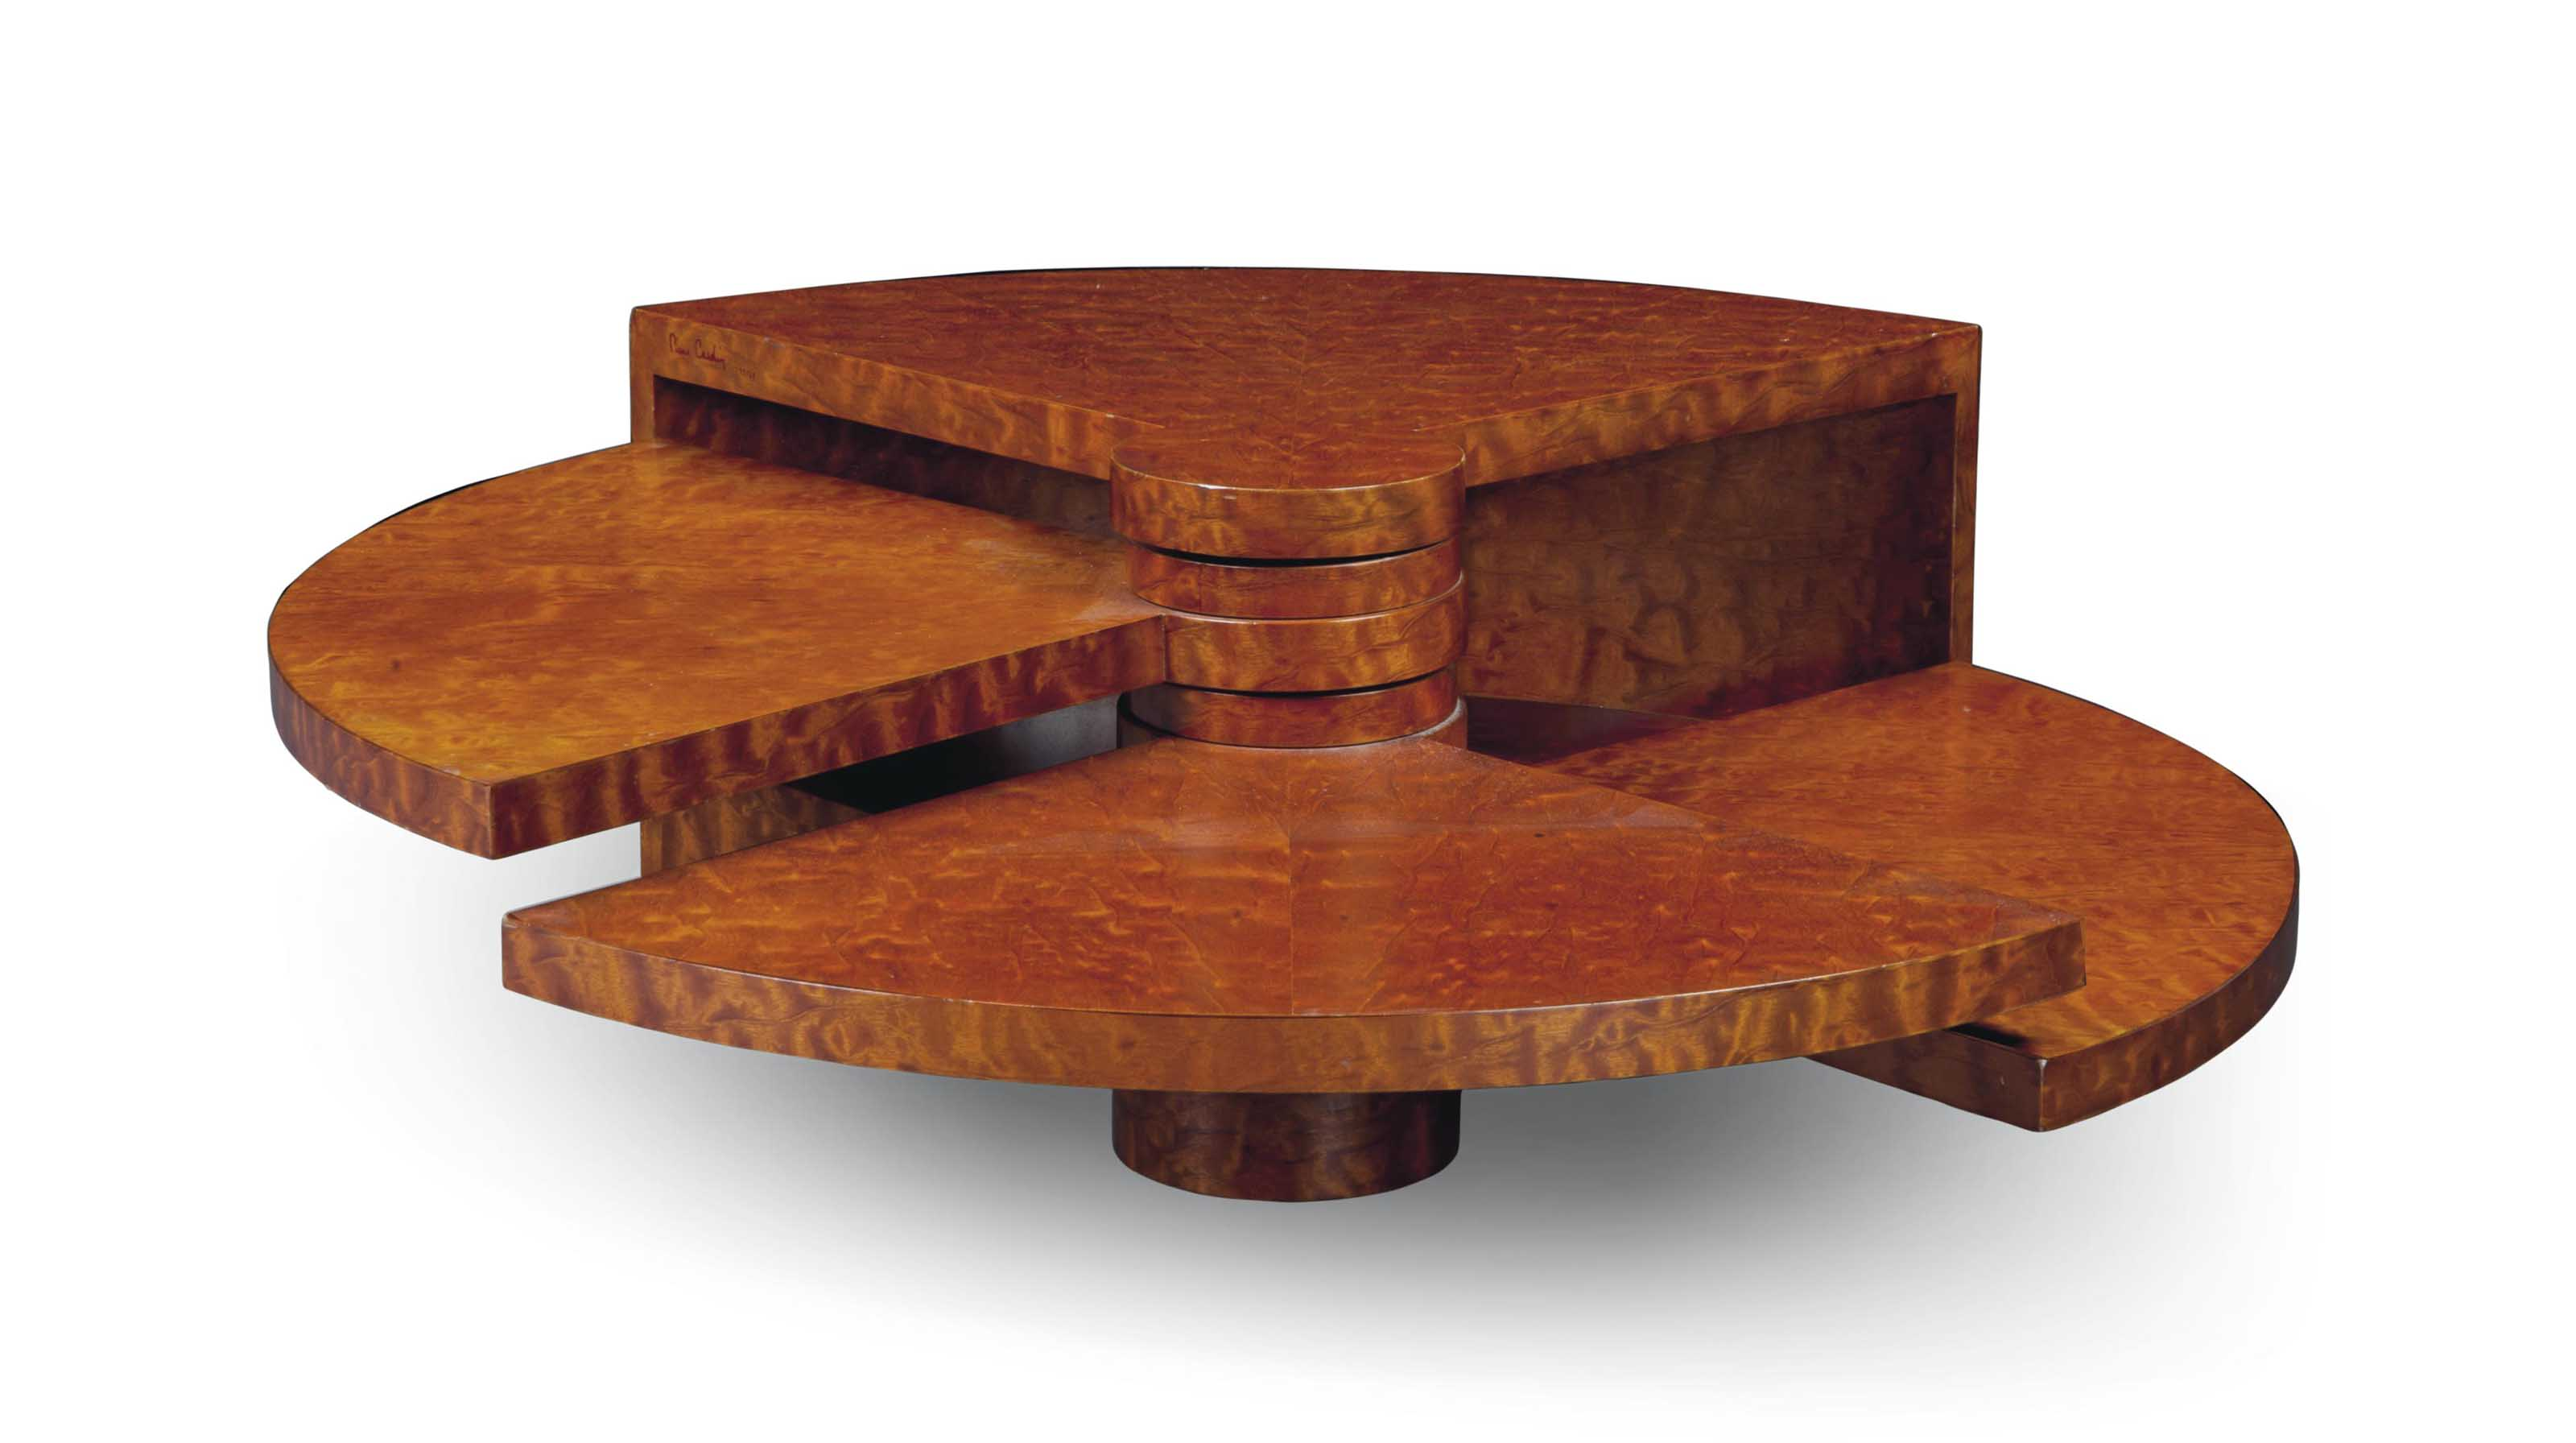 A PIERRE CARDIN (B. 1922) BURLWOOD 'FAN' COFFEE TABLE